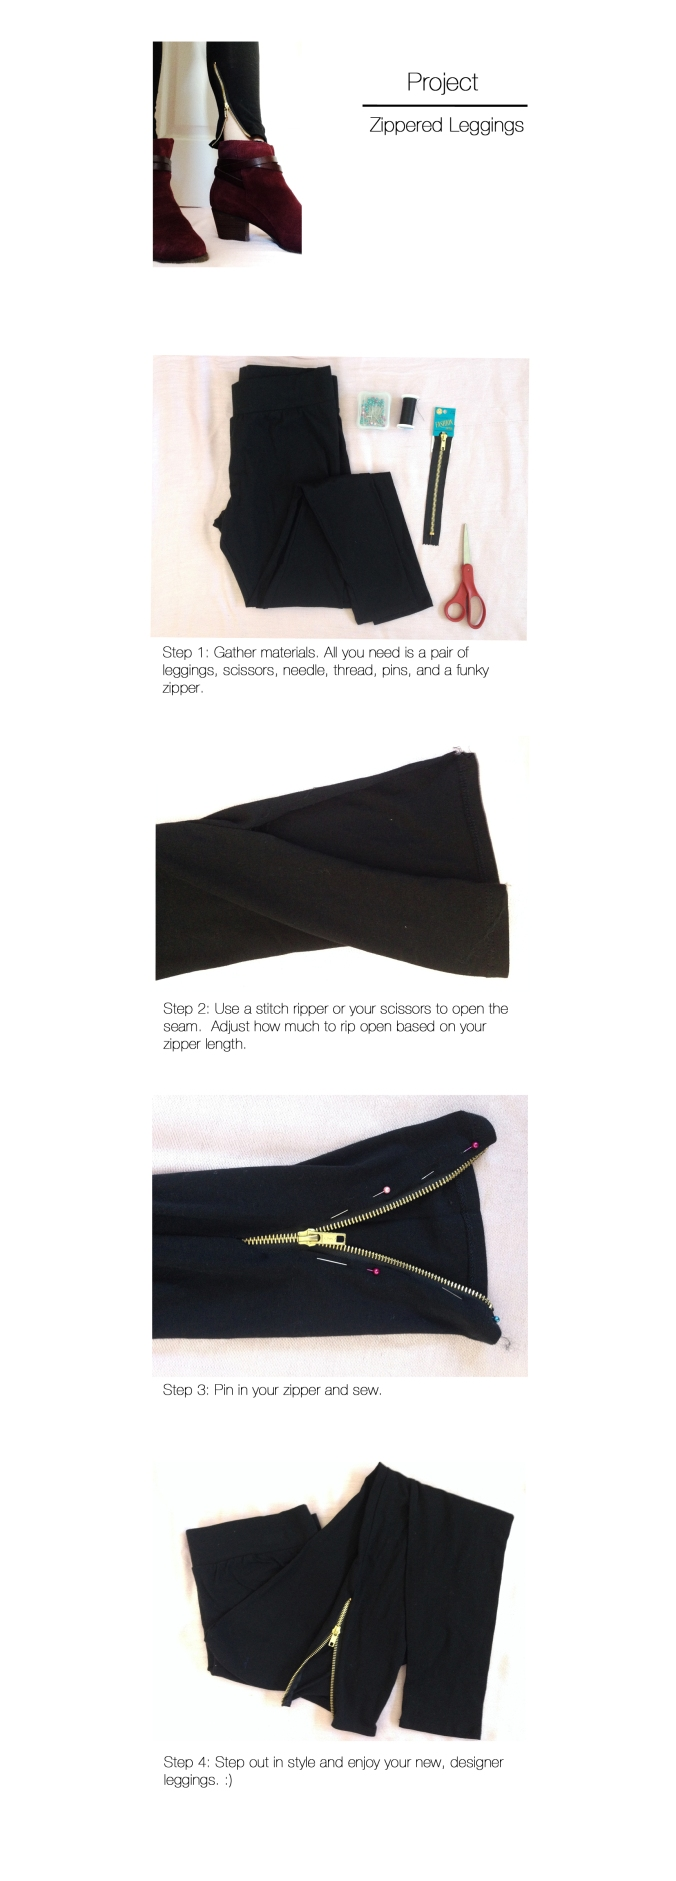 Zippered Leggings- Everyday facts